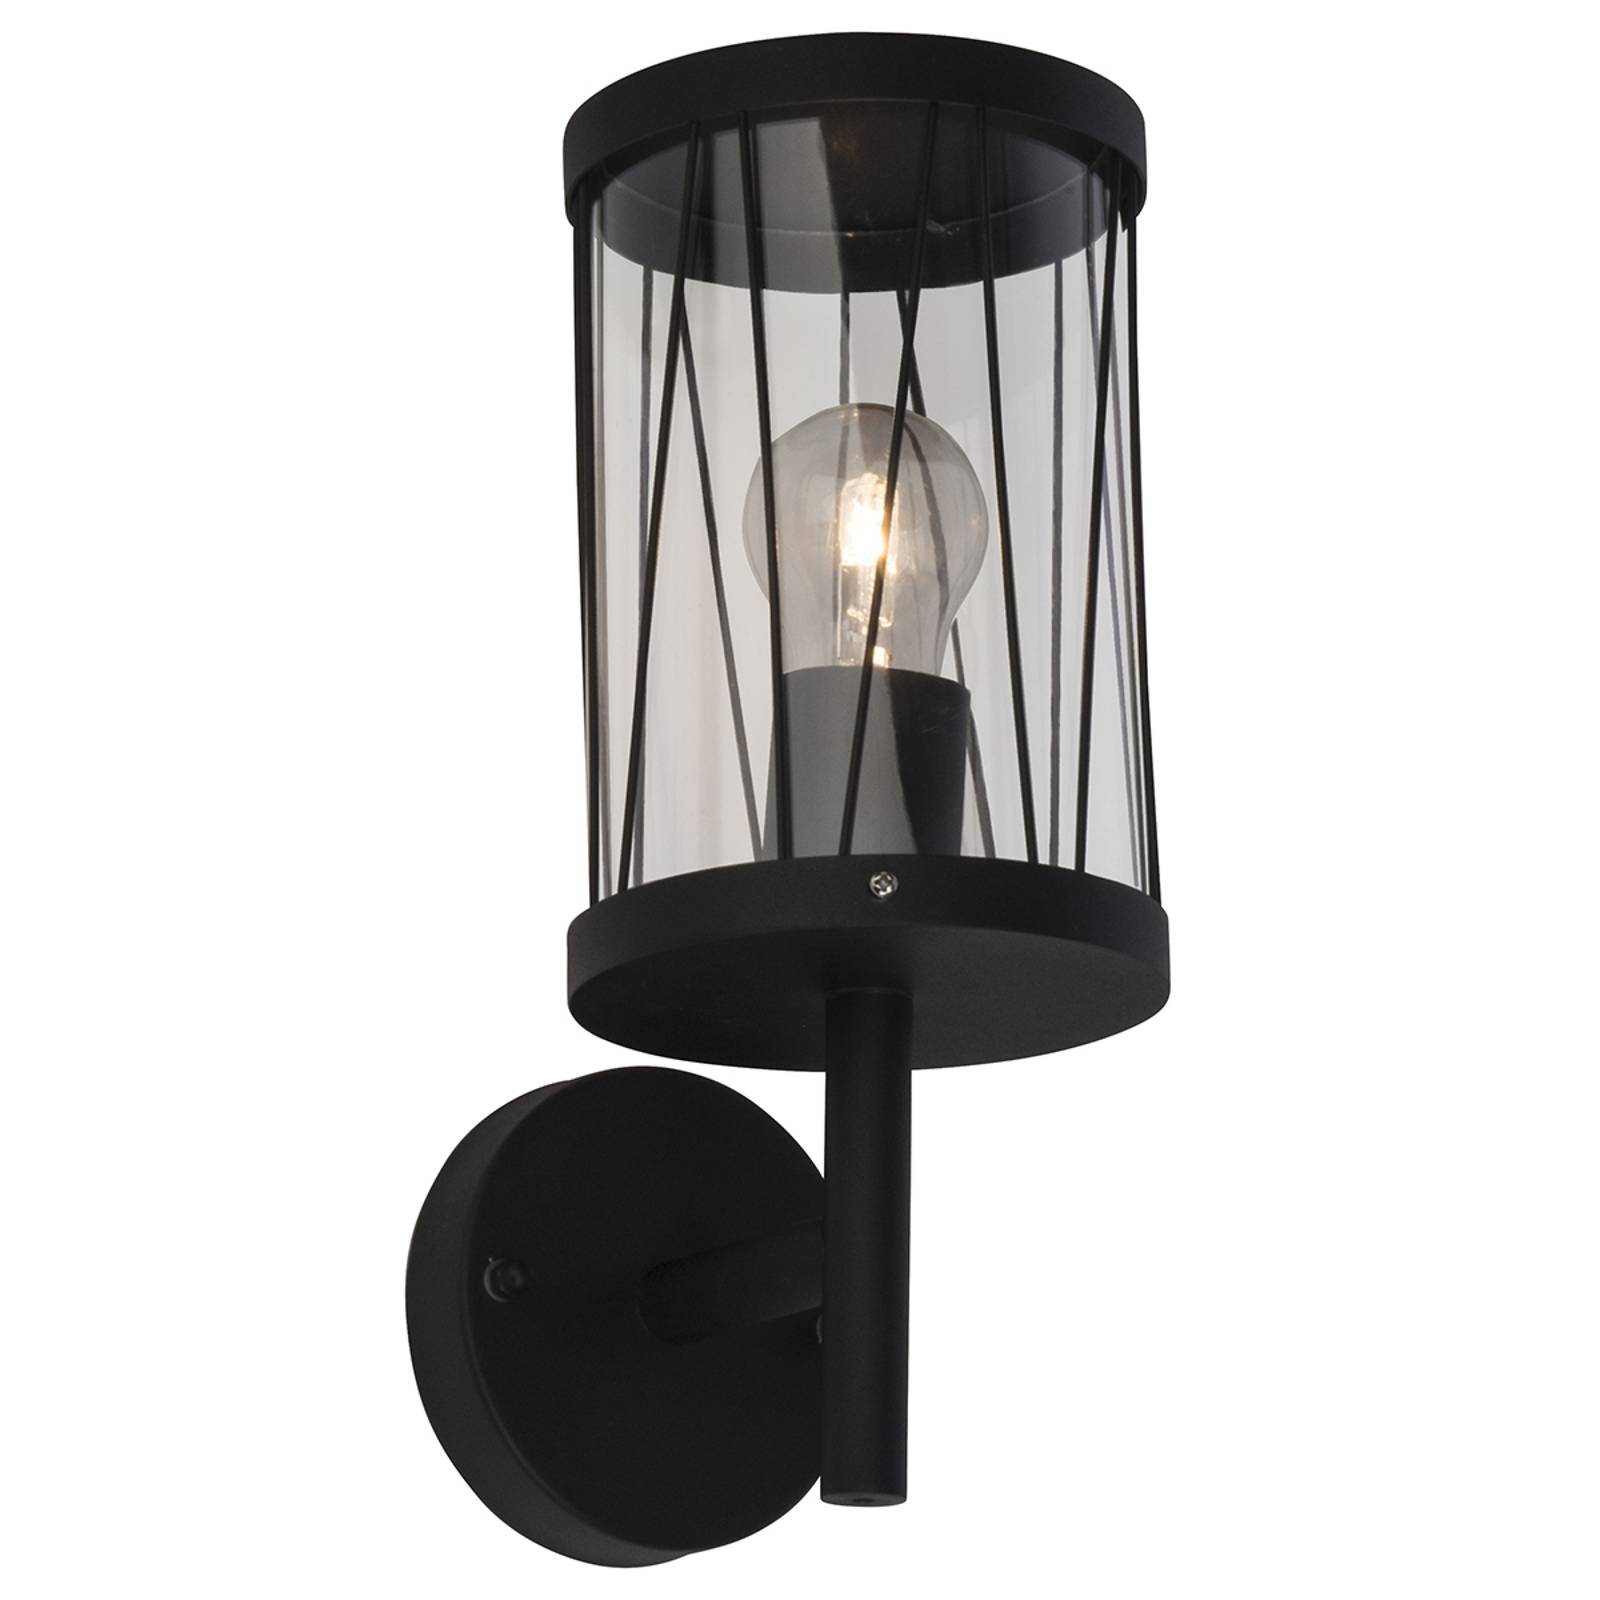 Black outdoor wall lamp Reed with wall bracket from Brilliant